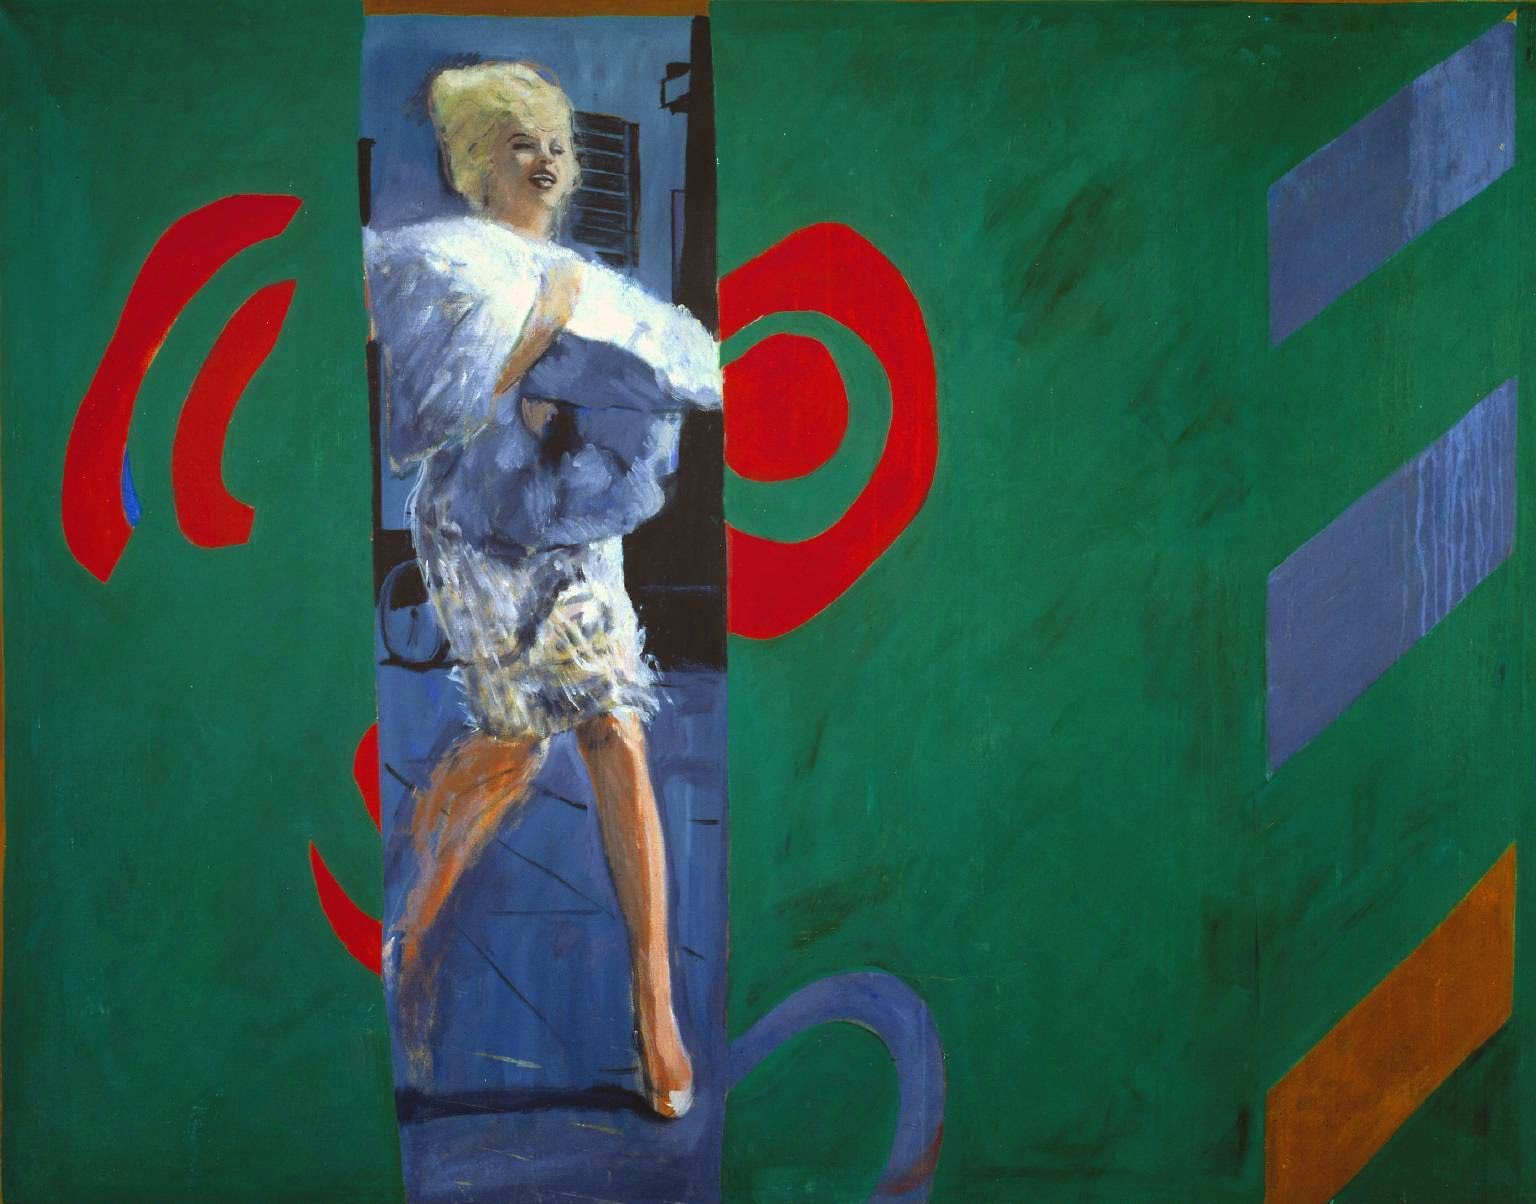 Painting of Marilyn Monroe on a green canvas